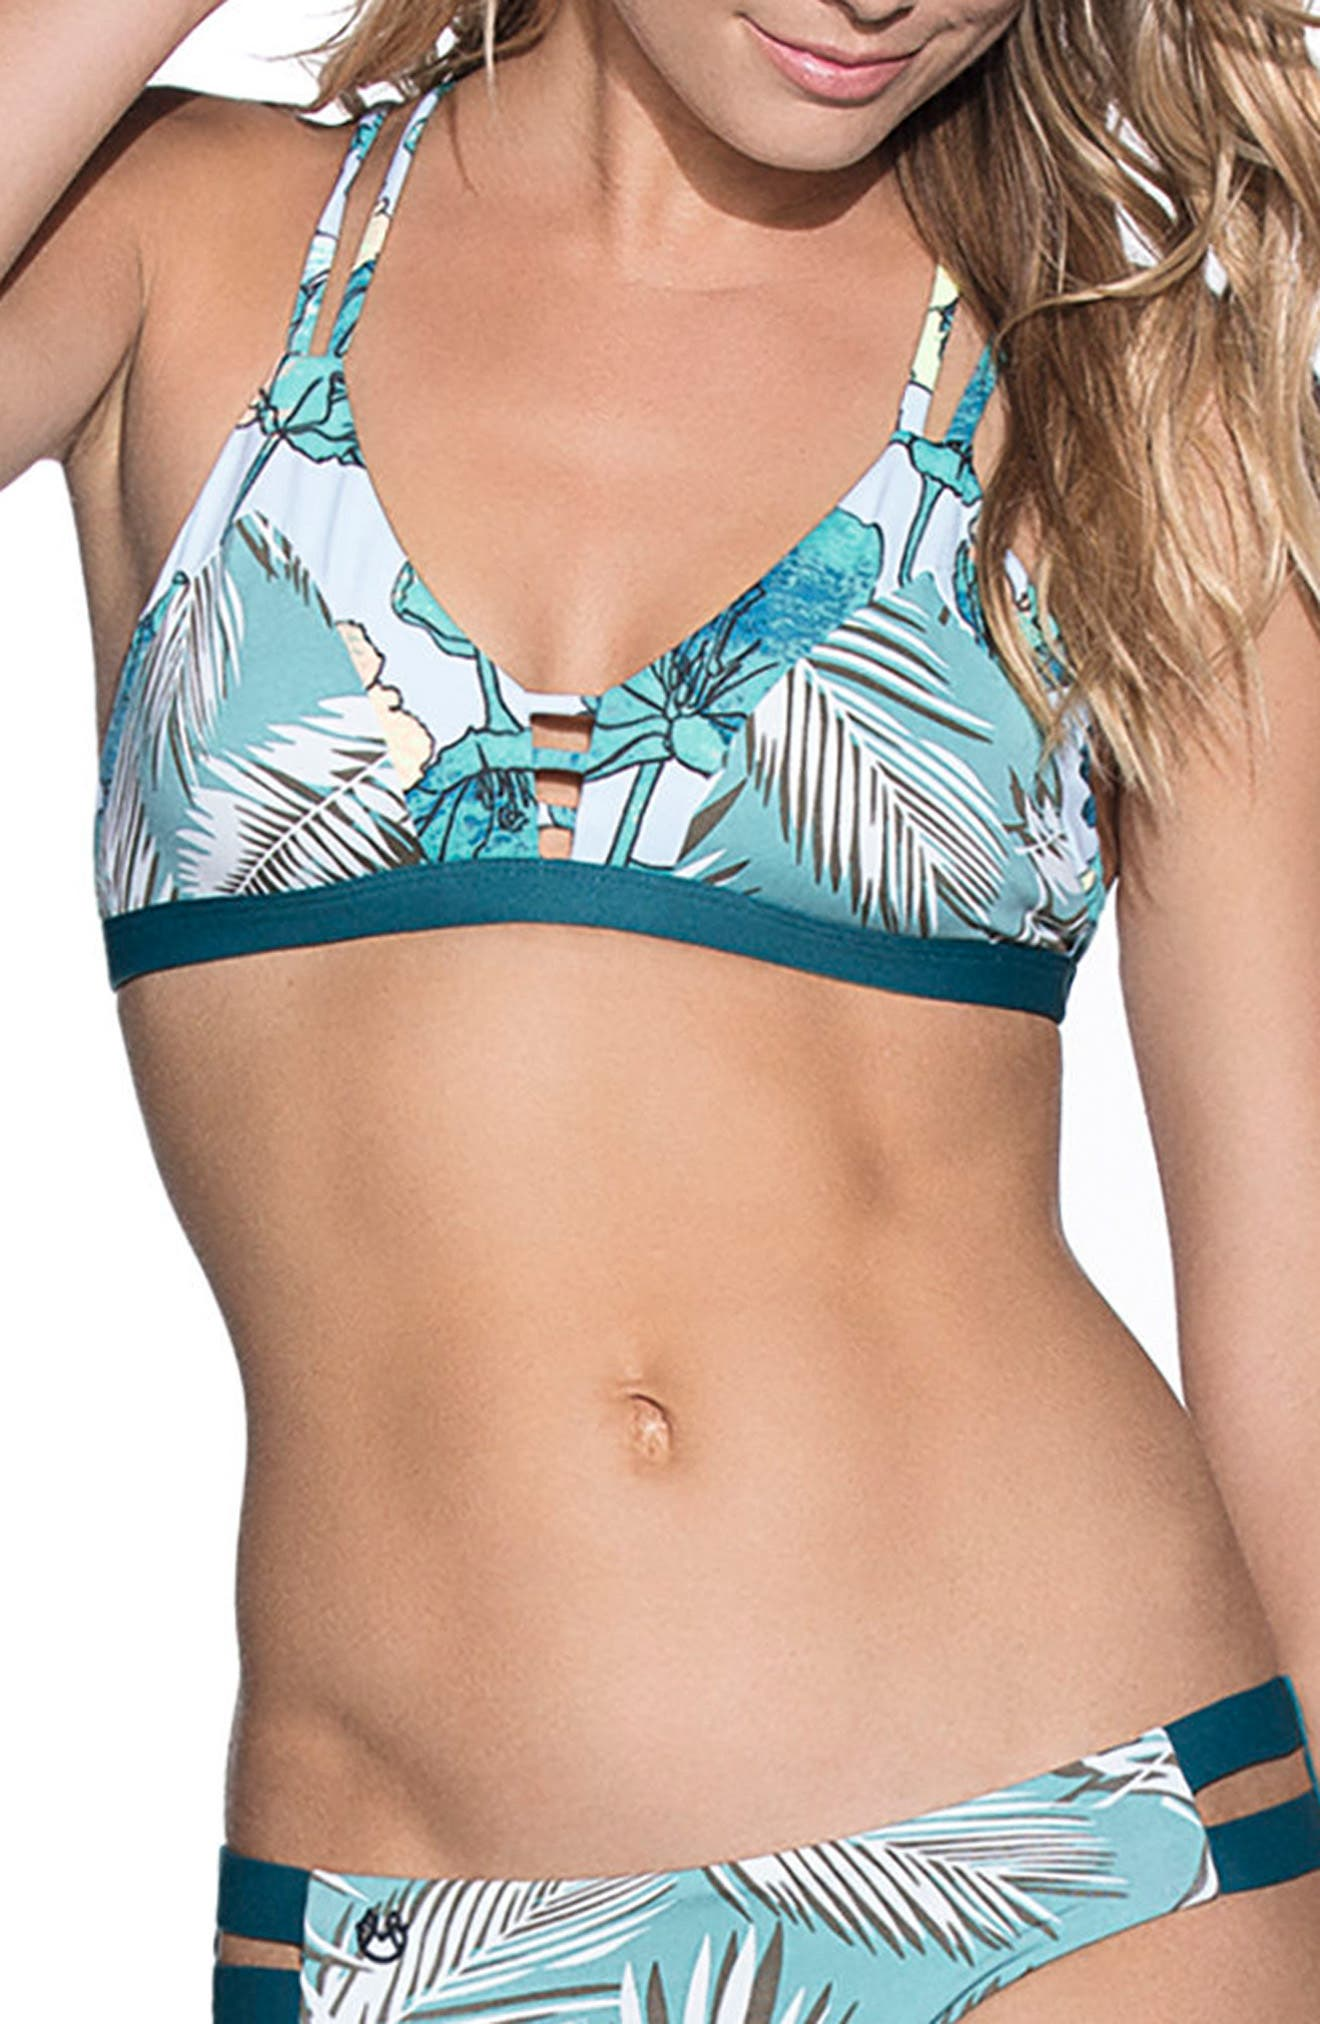 Guadua Bridge Bikini Top,                         Main,                         color, 440